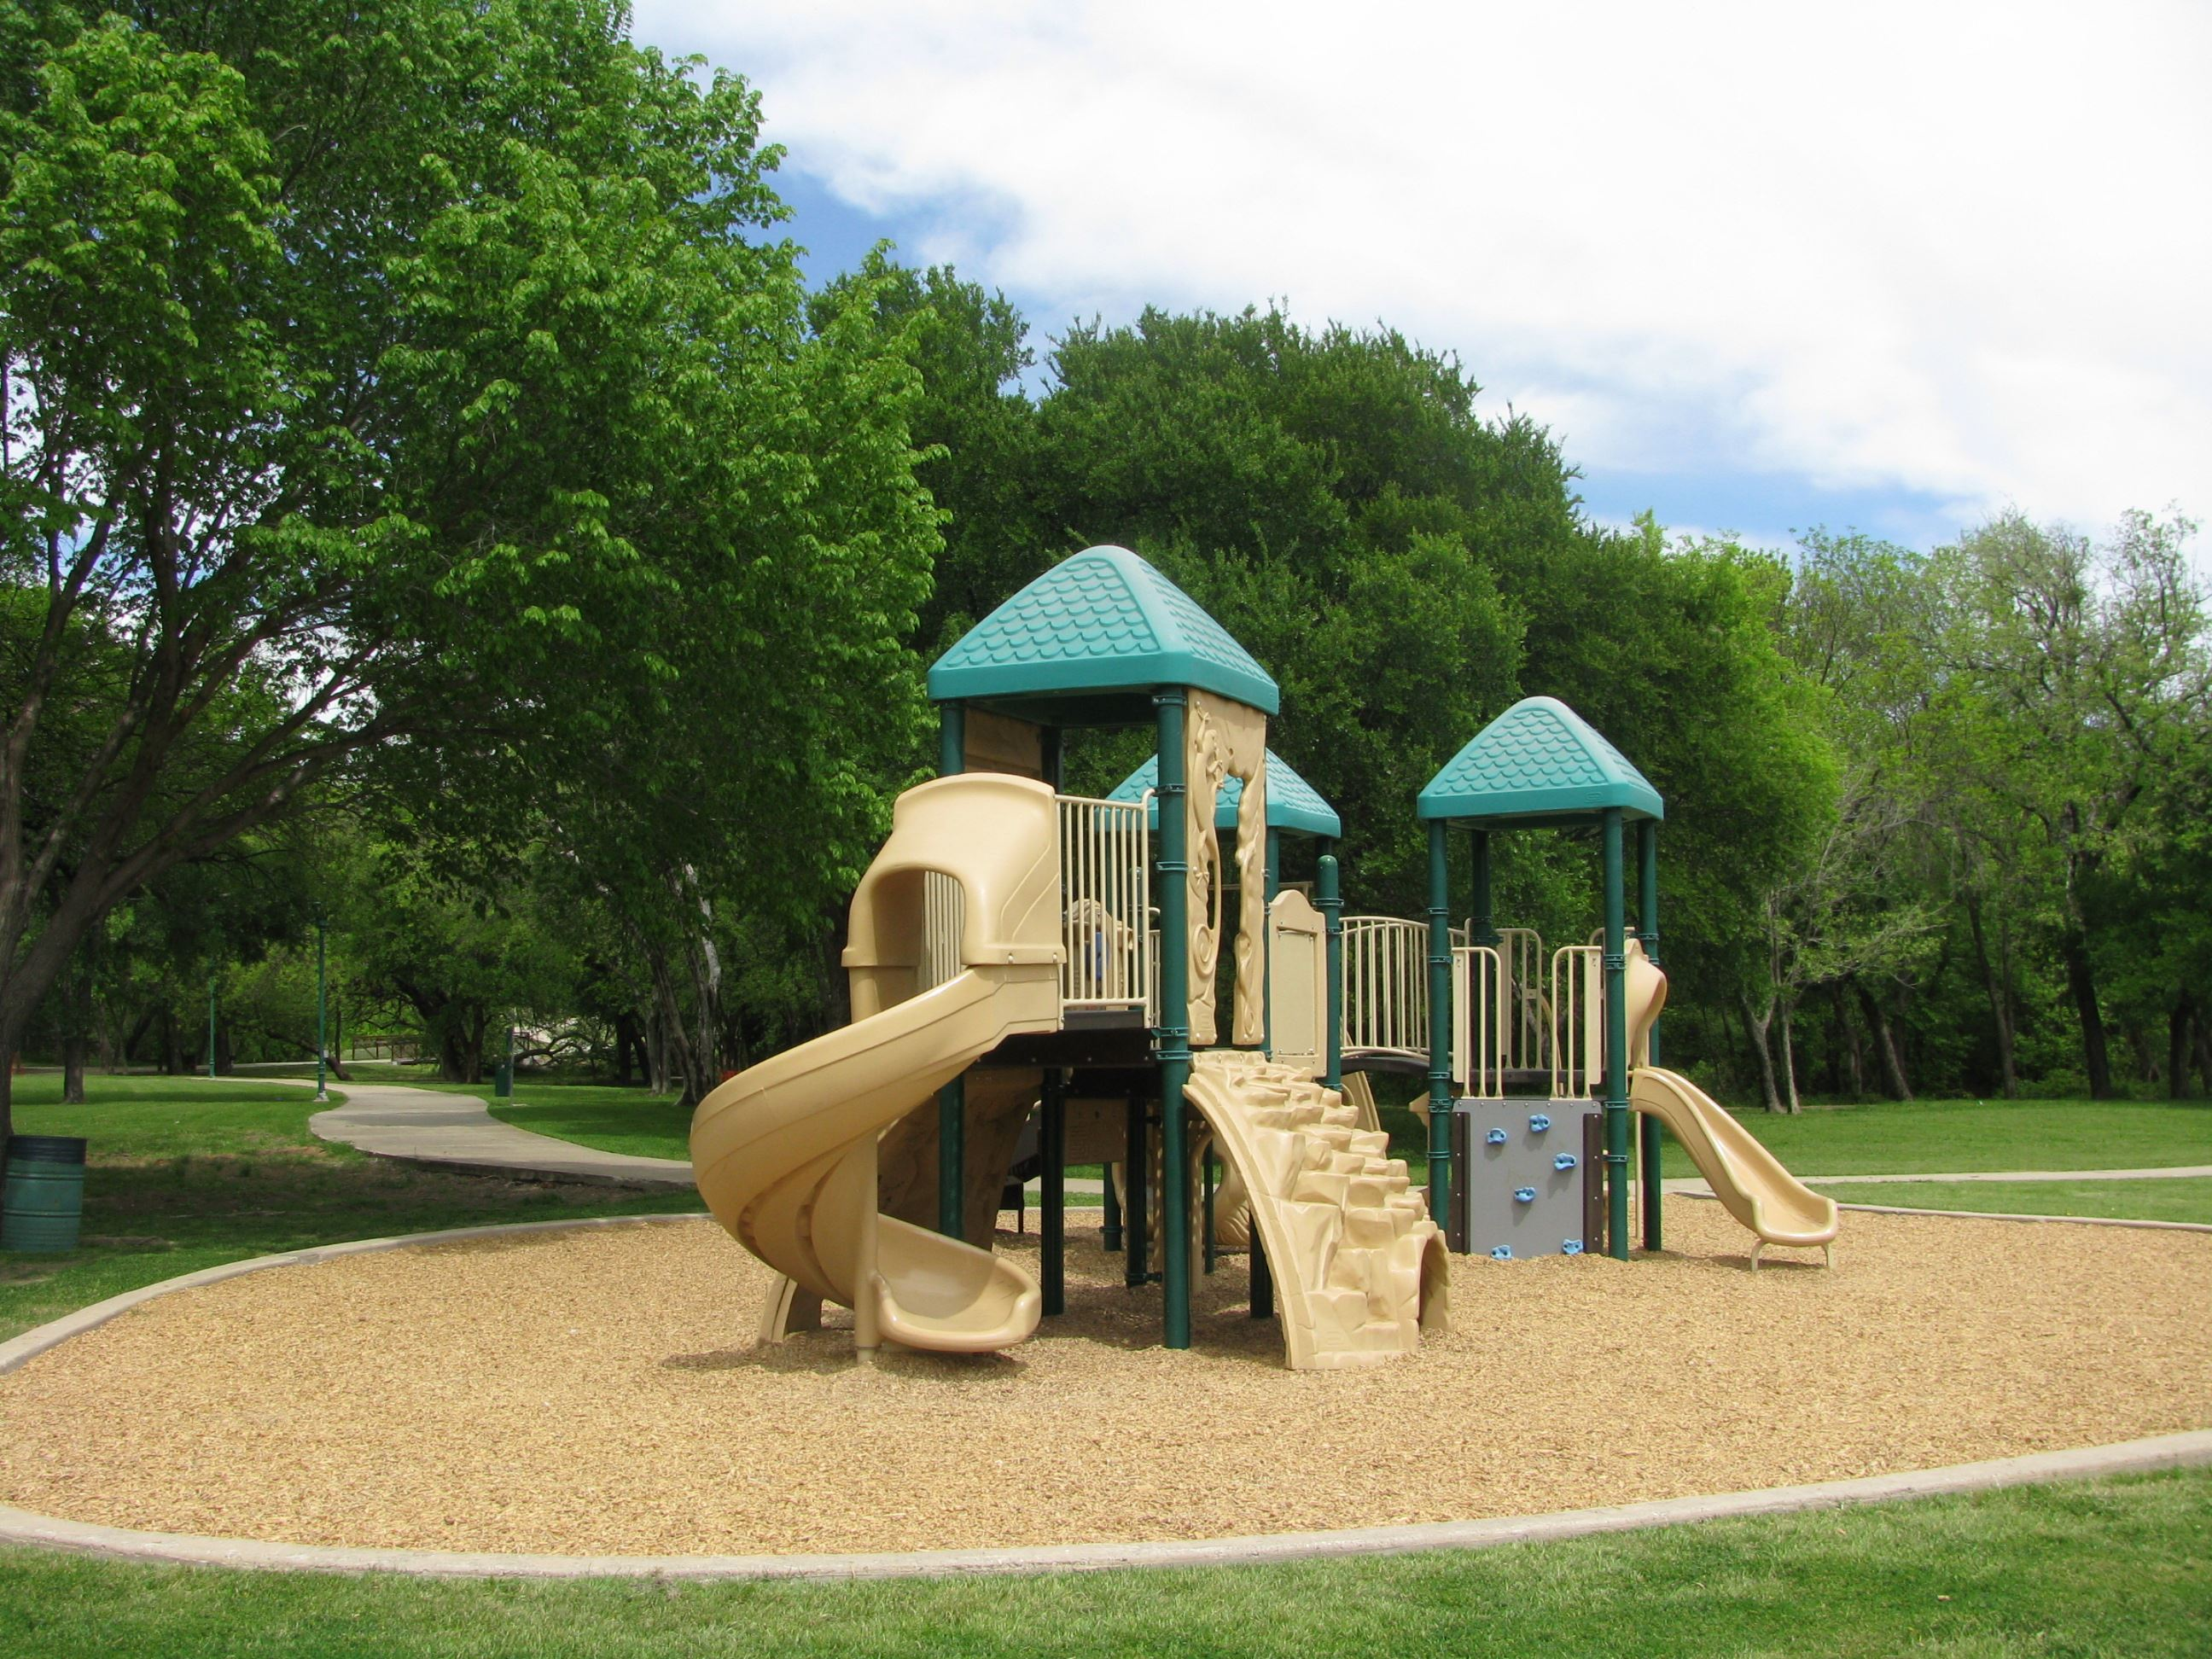 Play Structure at Bill Allen Memorial Park